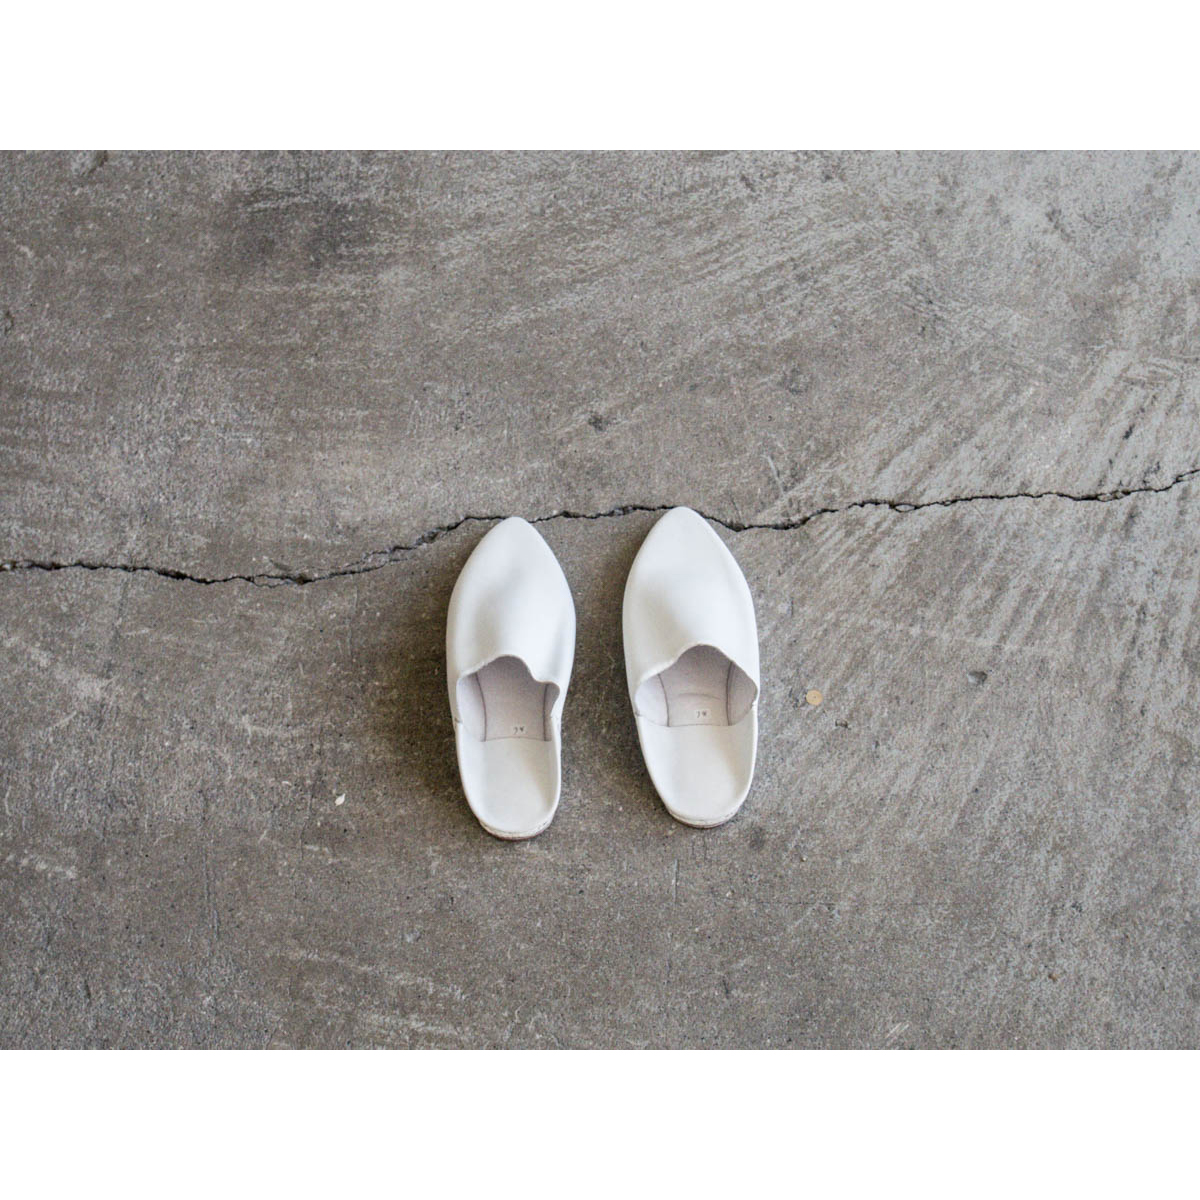 Madesign babouche slippers